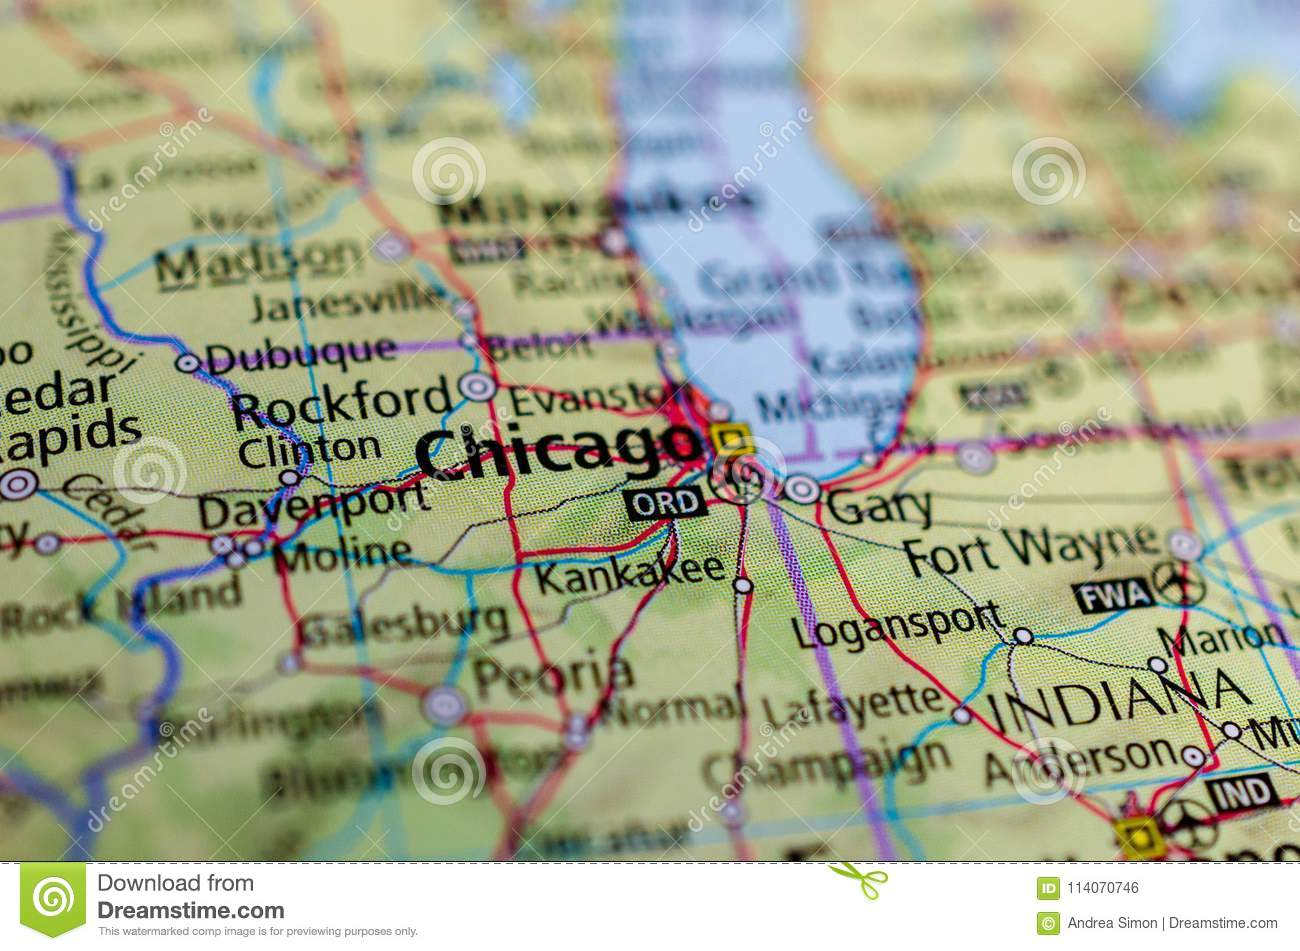 Chicago on map stock photo. Image of territory, shot - 114070746 on chicago city, chicago on media, chicago blue line map, chicago illinois, chicago street map, chicago attractions, seattle map, chicago area map suburbs, chicago united states map, lincoln park chicago map, chicago neighborhoods, north chicago il map, chicago usa map, chicago home, philadelphia map, crystal lake chicago map, chicago highlights, san francisco bus map, chicago airport map,